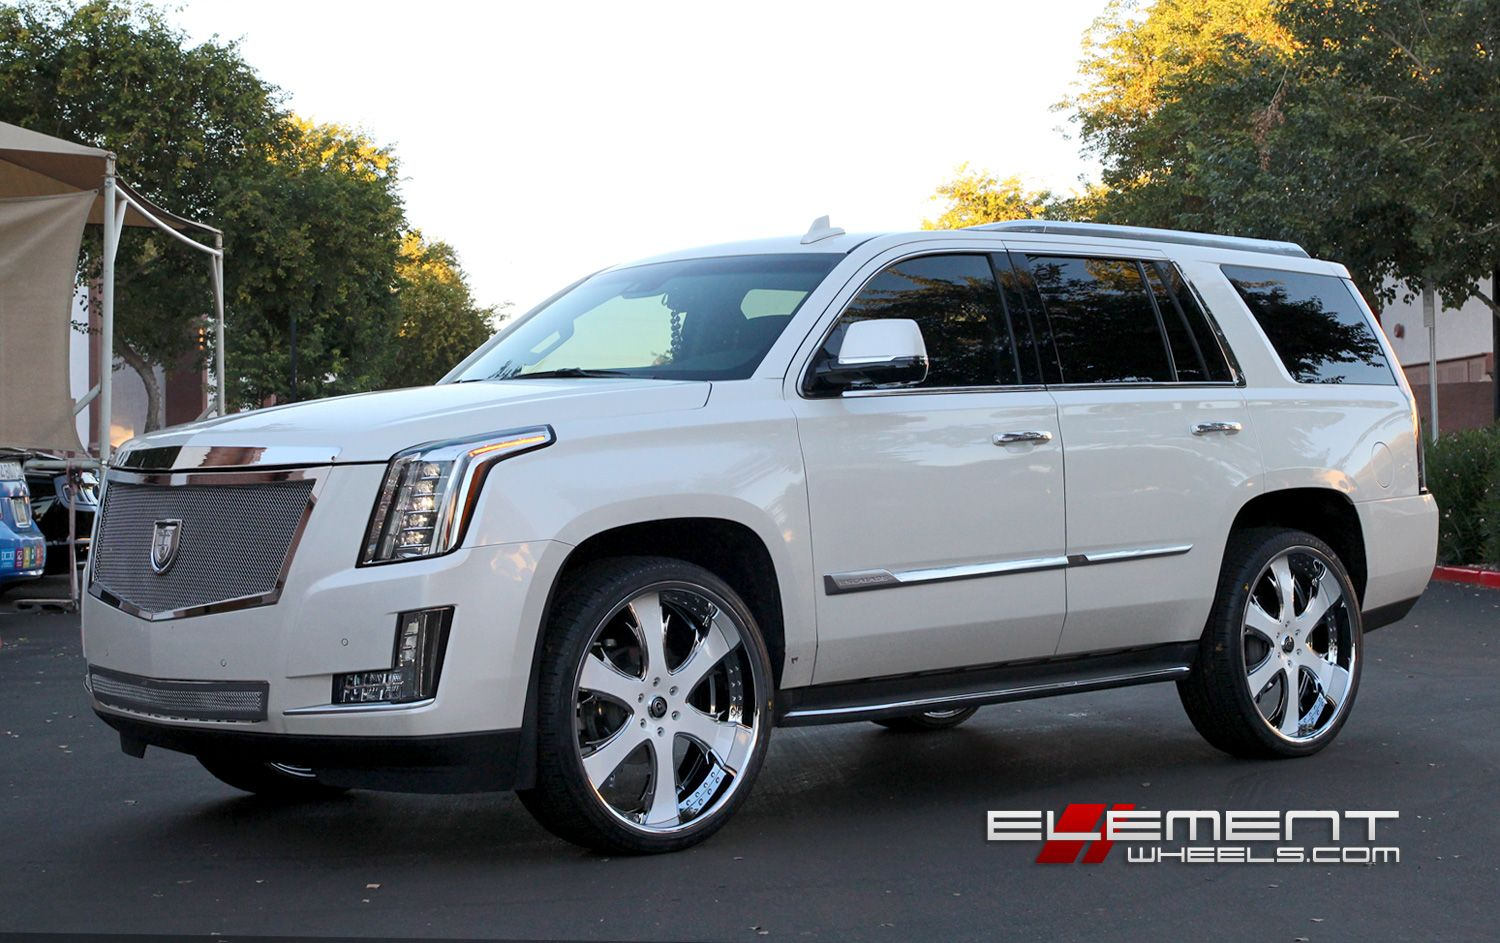 cadillac new escalade ext third truck reviews quarter best panel rear cars